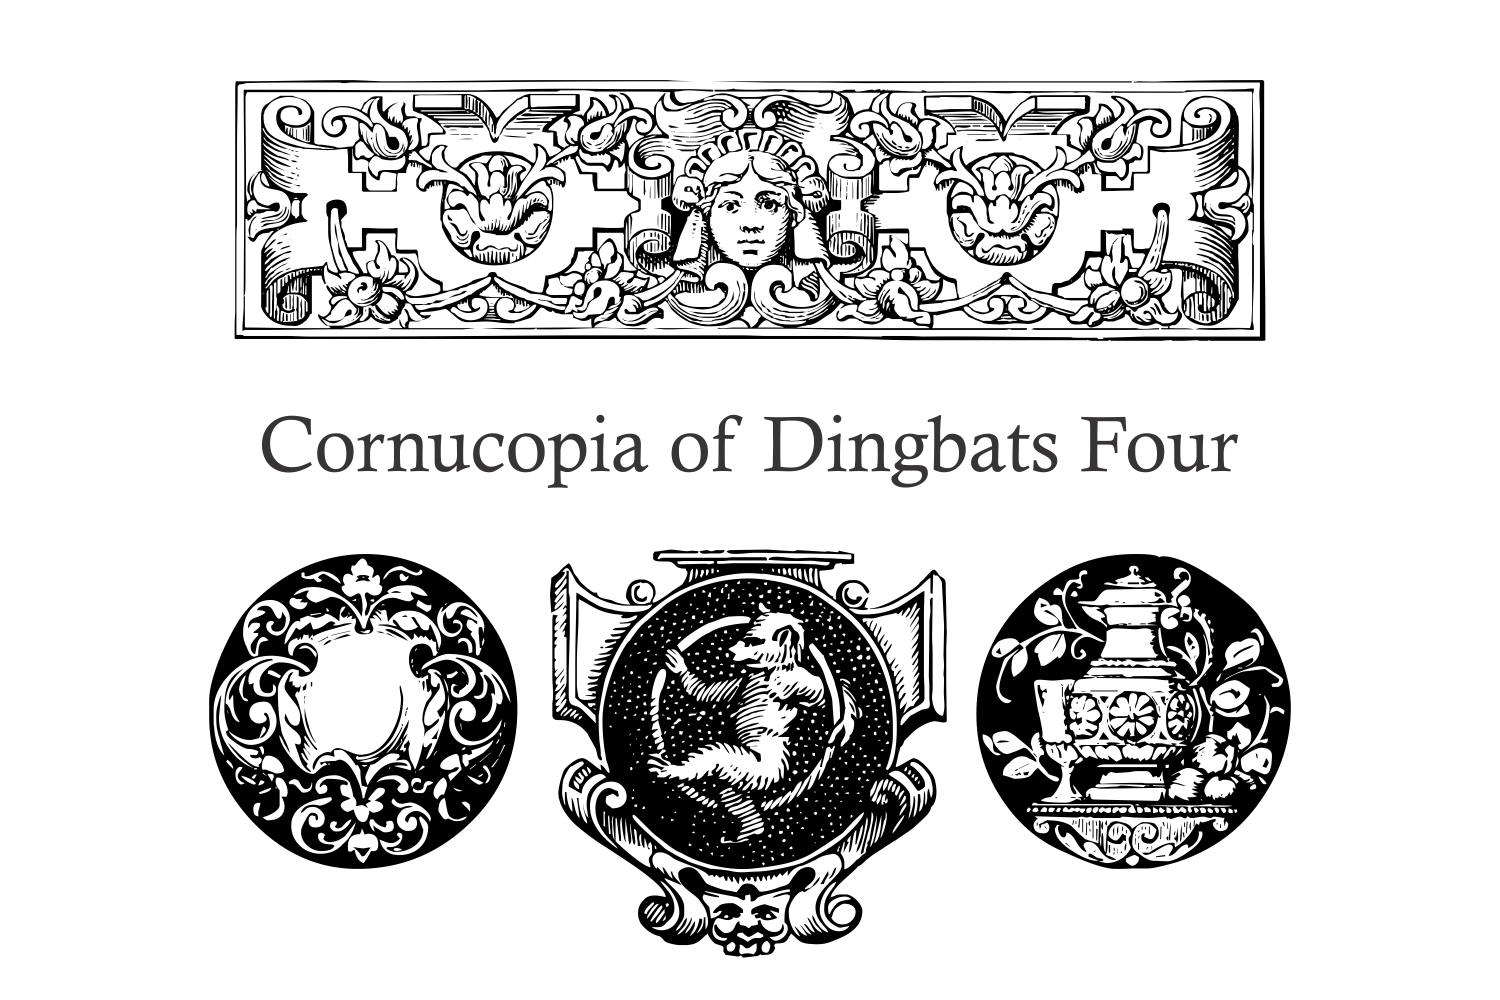 Cornucopia of Dingbats Four example image 4